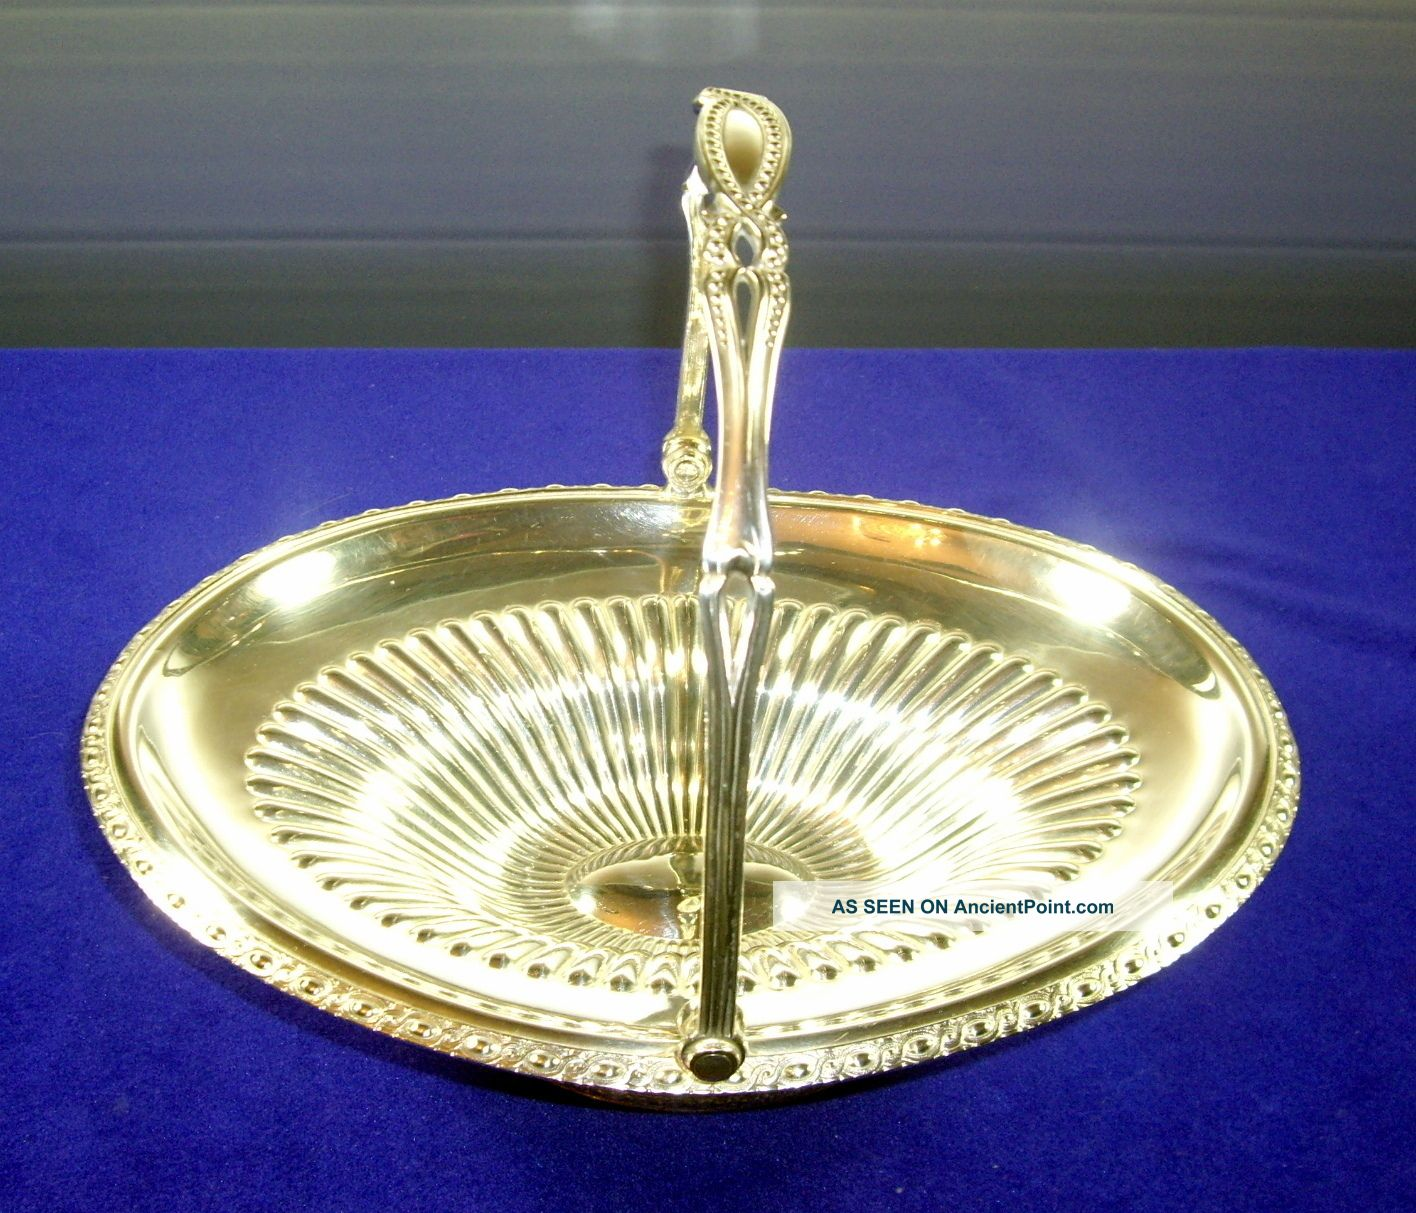 Silver Plated Oval Footed Basket With Handle By Hartford Mfg Co,  Hartford,  Ct Baskets photo